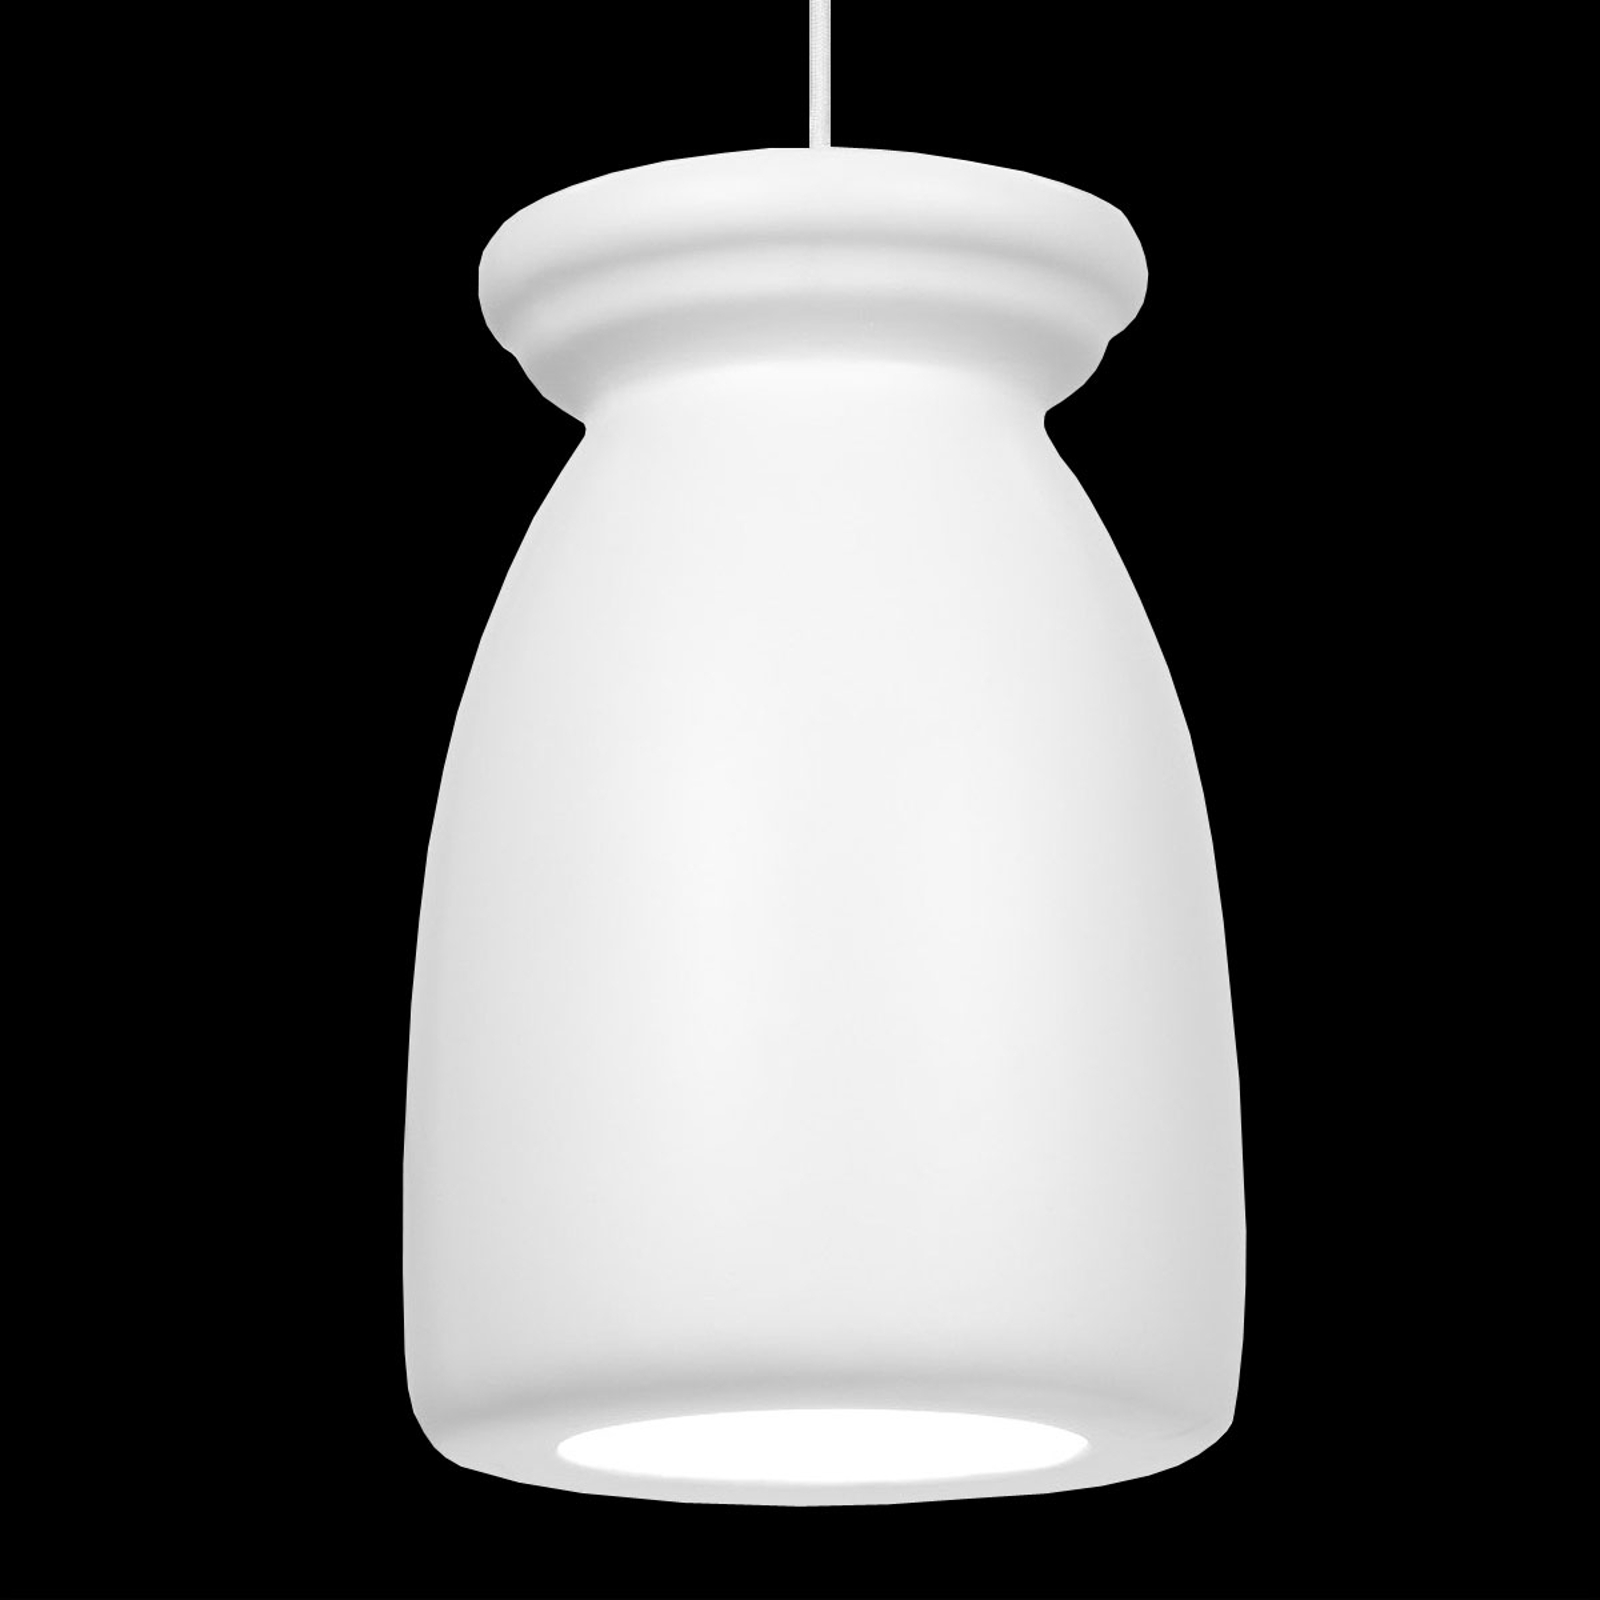 Domed Biscuit hanging light with designer quality_1022018_1